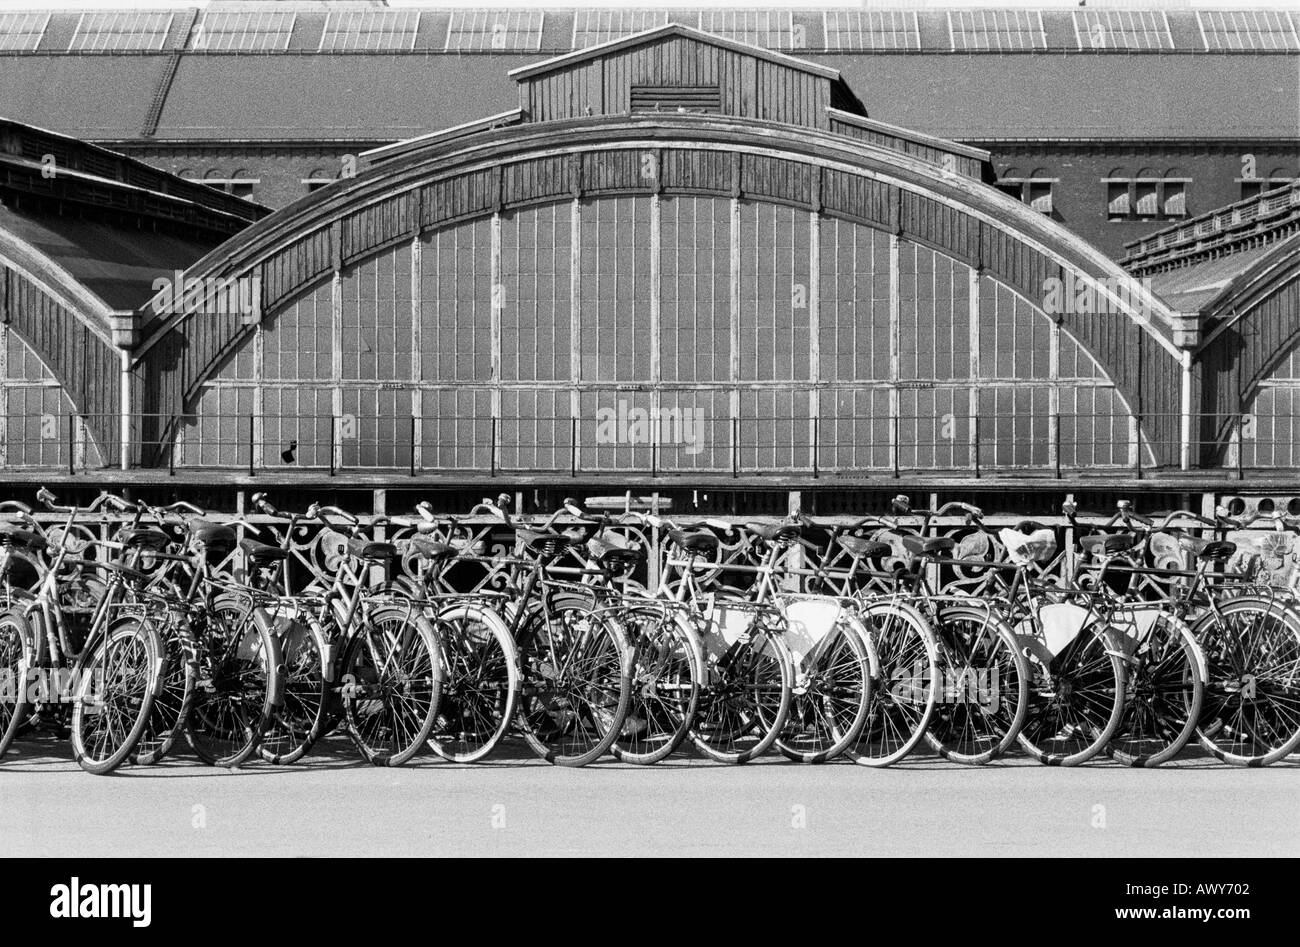 Bicycles parked outside Copenhagen railway station - Stock Image